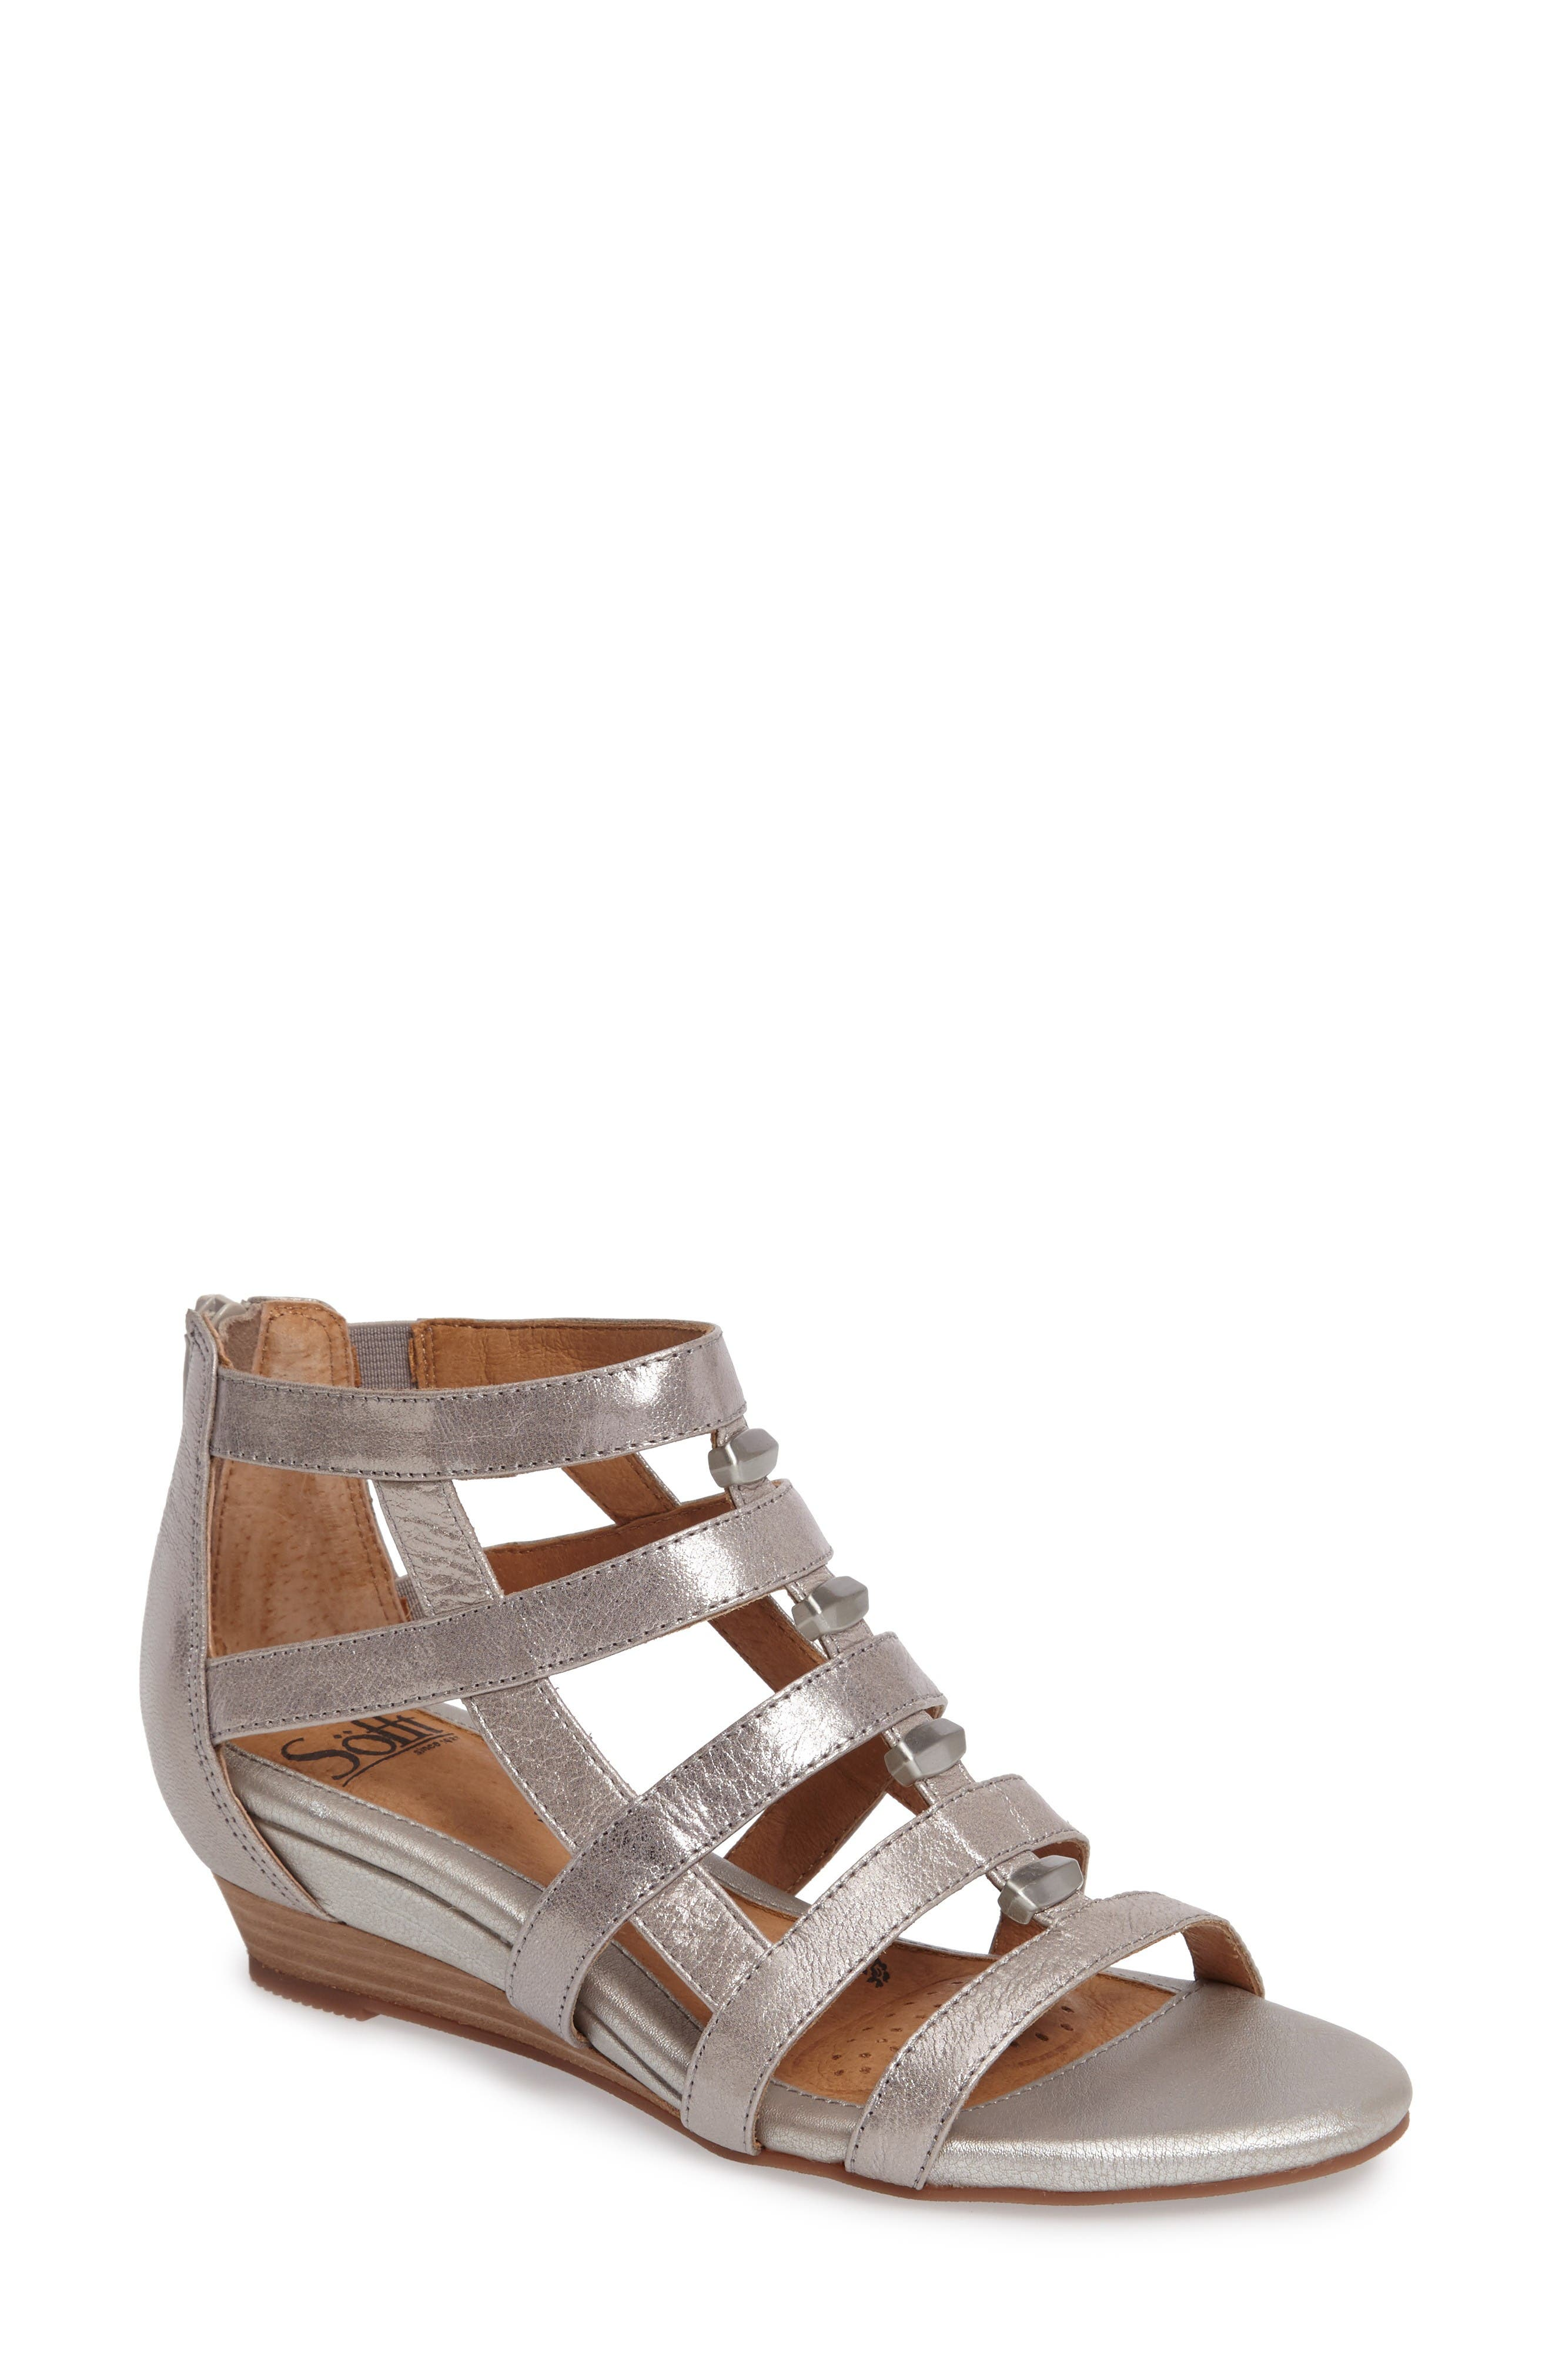 SÖFFT Rio Gladiator Wedge Sandal